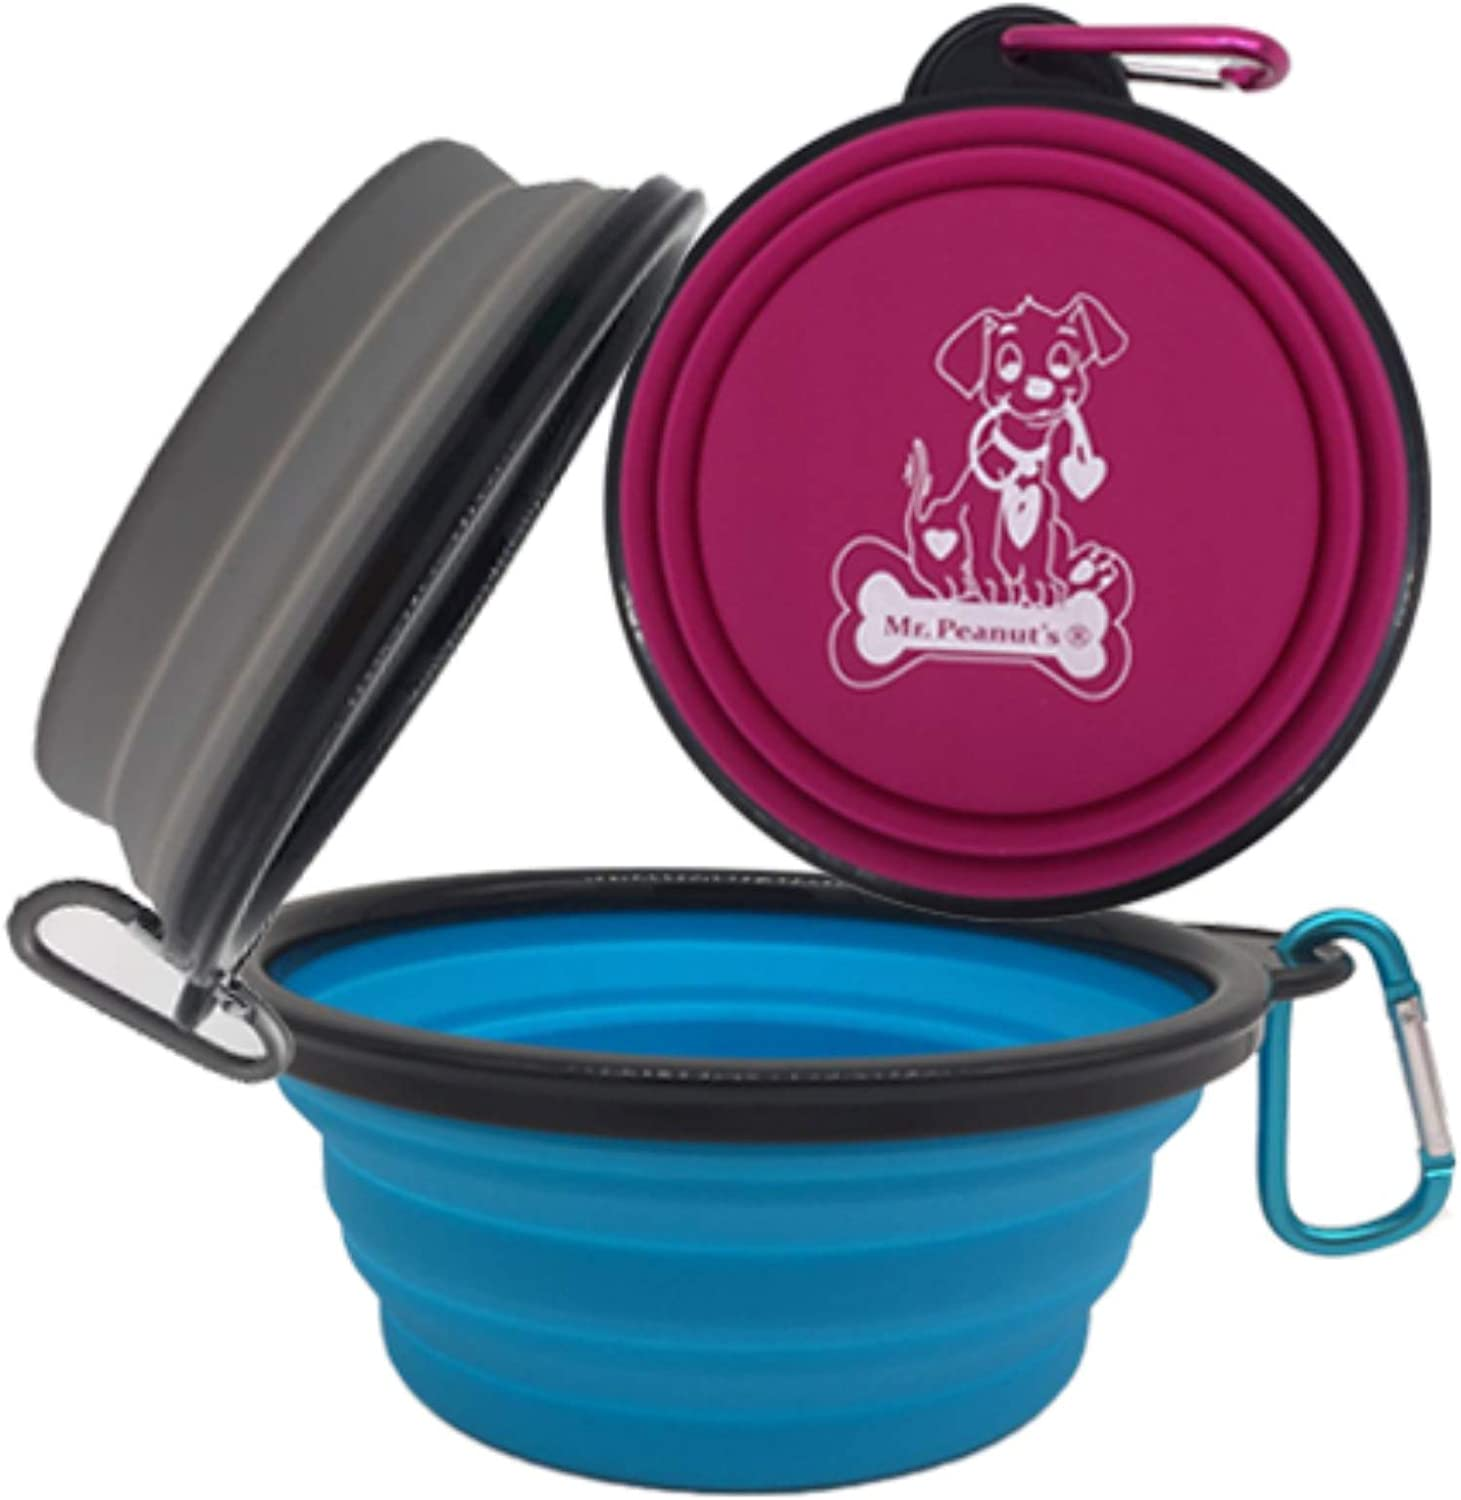 Collapsible Silicone Bowls 3 Pack (XL 25oz Each) with Color Matched Carabiner Clips - Dishwasher Safe BPA FREE Food Grade Silicone Portable Pet Bowls - Foldable for Journeys, Hiking, Kennels & Camping